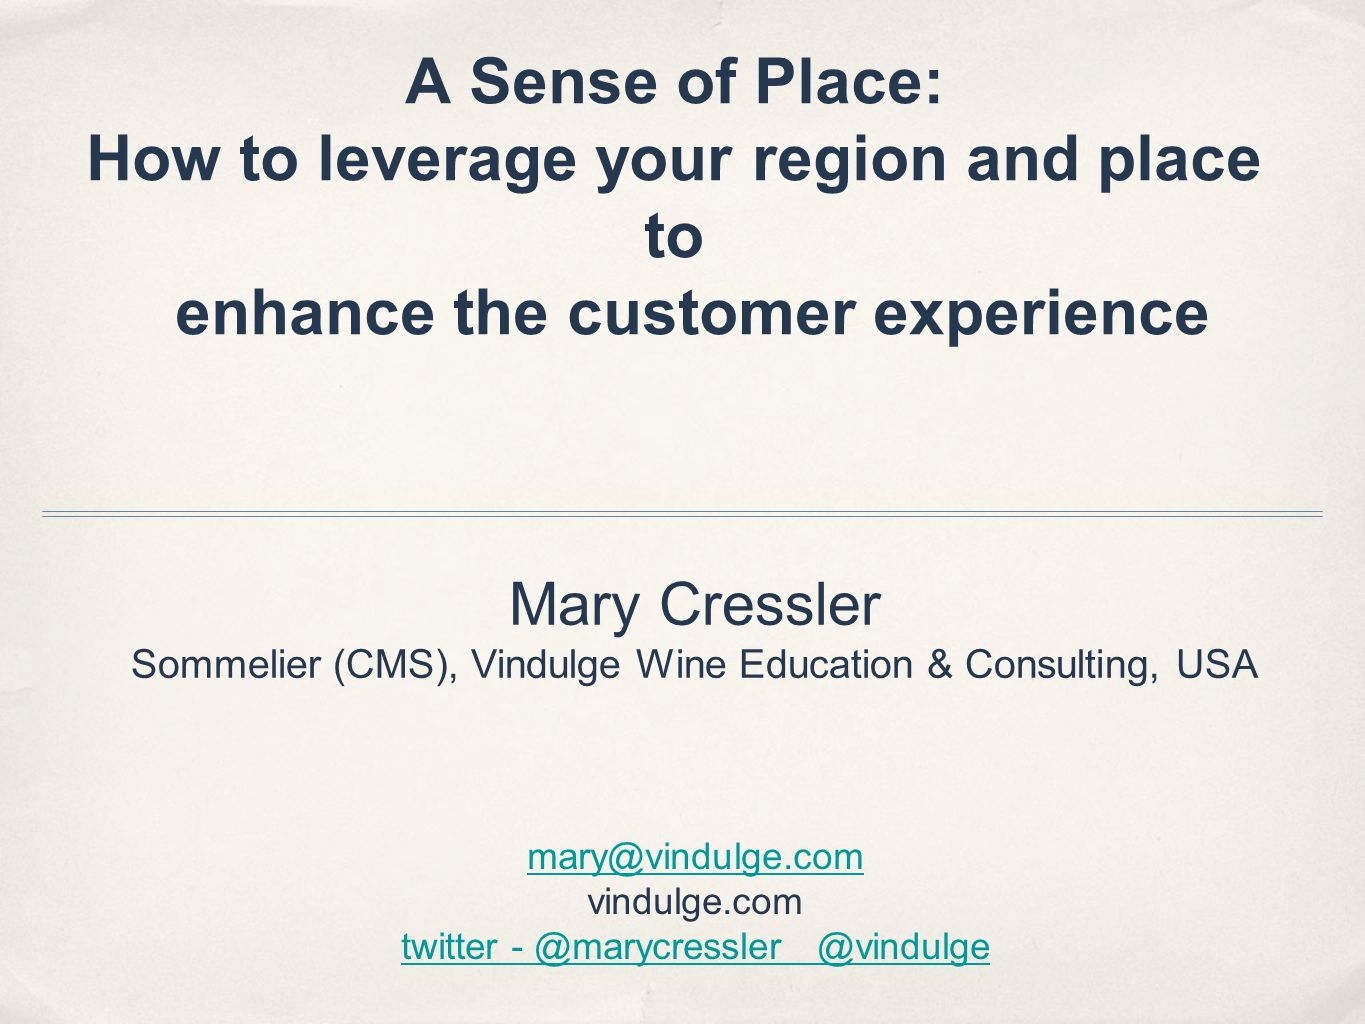 A Sense of Place: How to leverage your region and place to enhance the customer experience Mary Cressler Sommelier (CMS), Vindulge Wine Education & Consulting, USA mary@vindulge.com vindulge.com twitter - @marycressler @vindulge